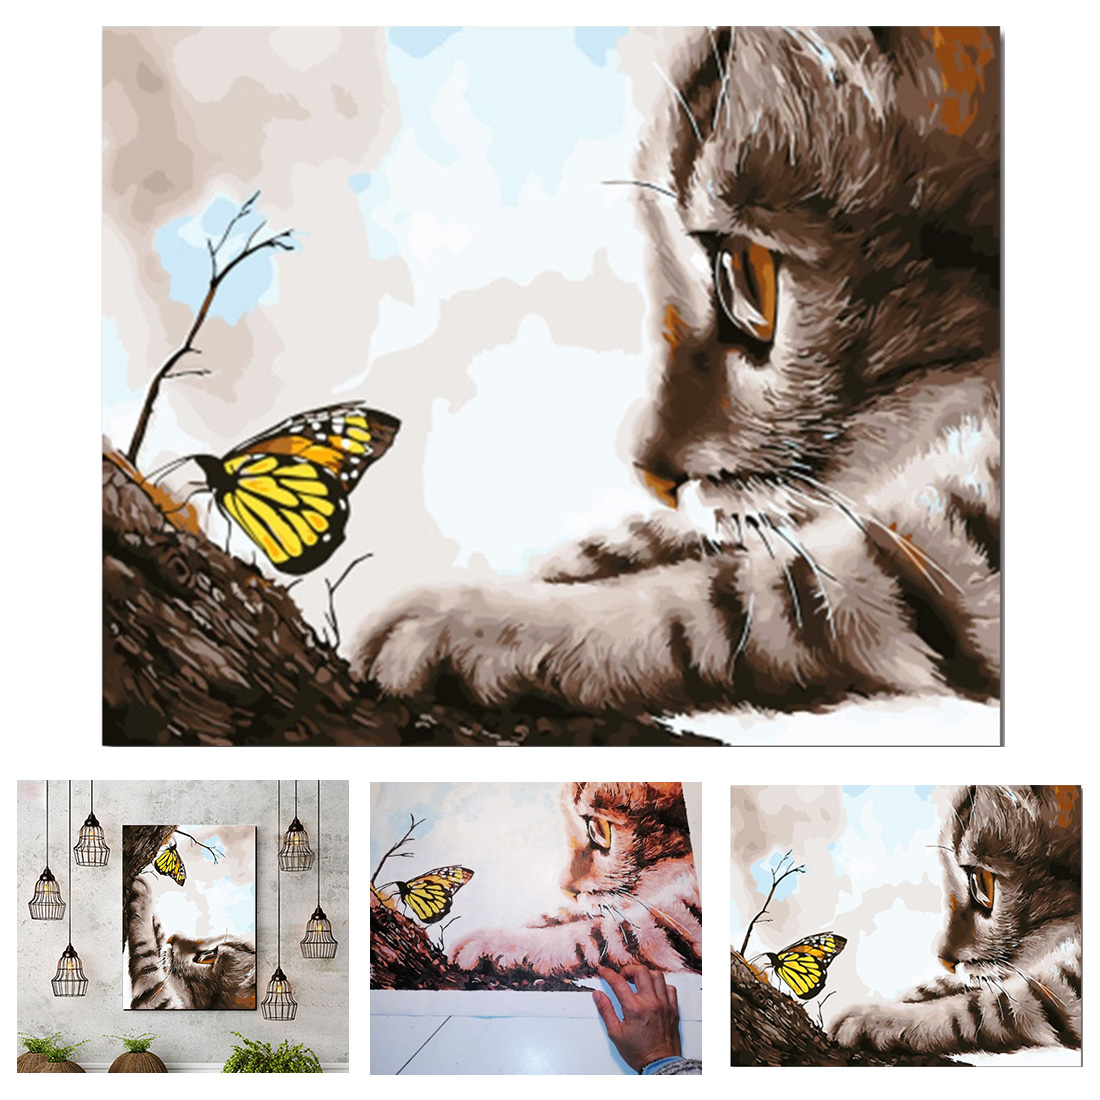 Home Decoration DIY Cat And Butterfly Animal 40x50cm 50x60cm Prints Wall Art Canvas Painting DIY Painting Wall Picture